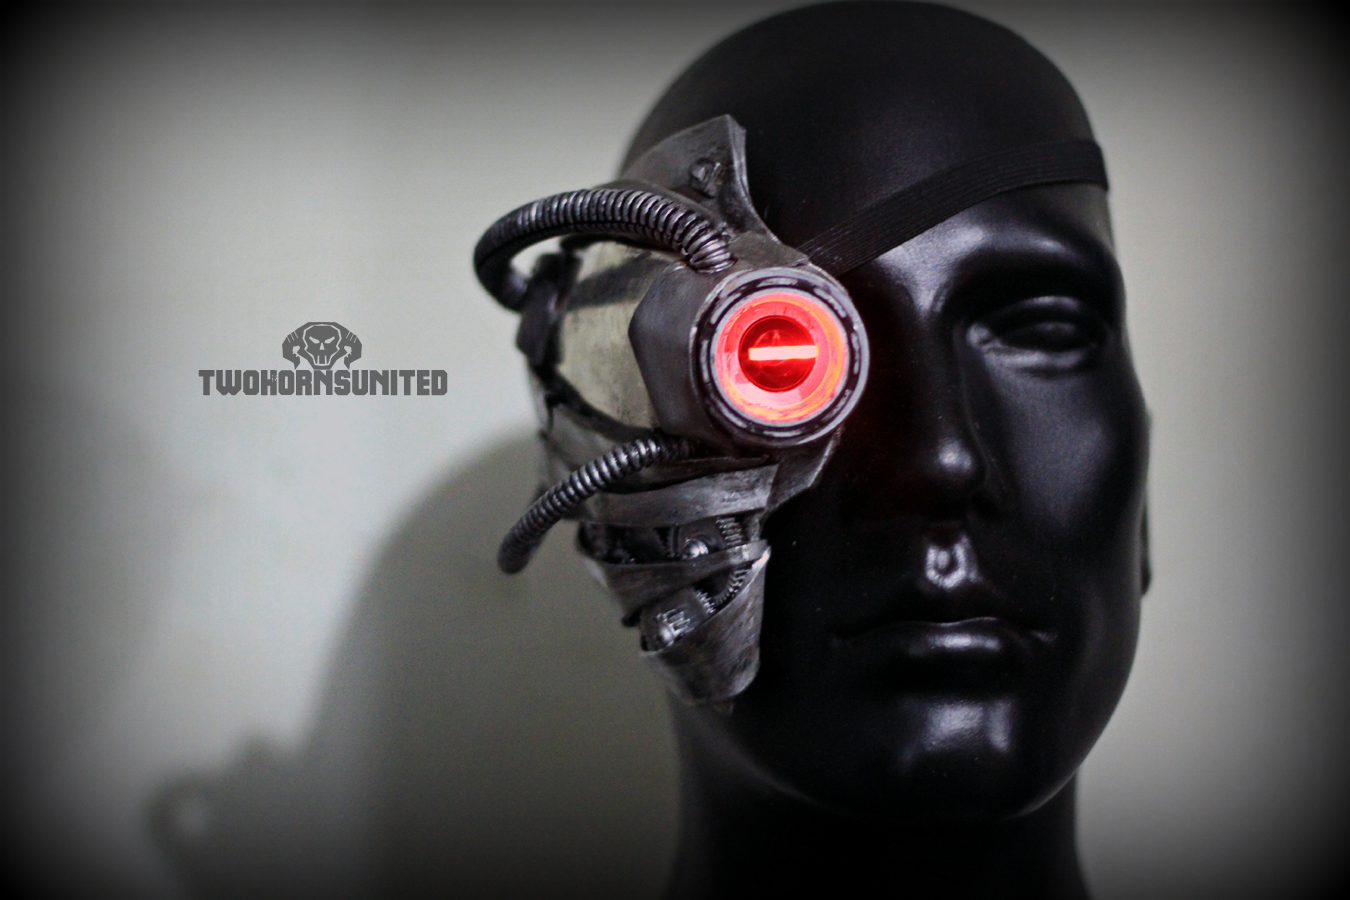 Cyberpunk ocular augmentation by TwoHornsUnited